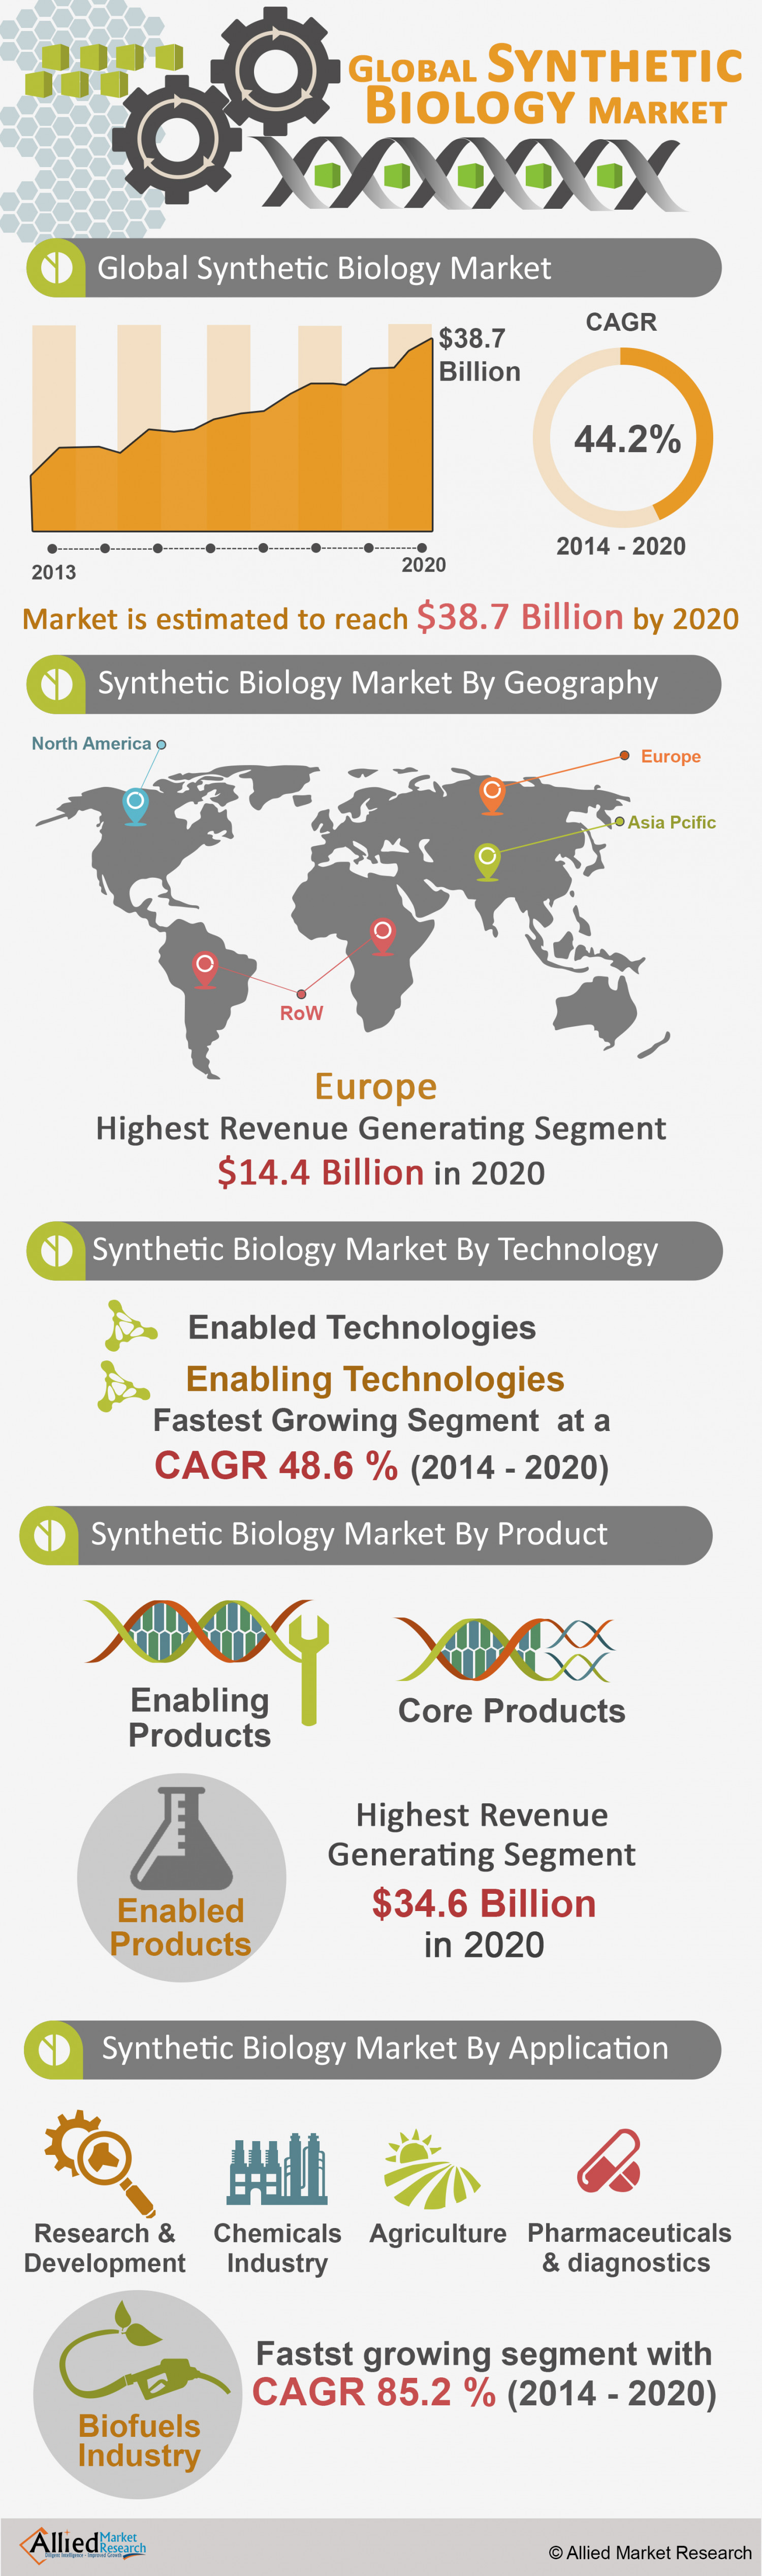 Global Synthetic Biology Market Infographic